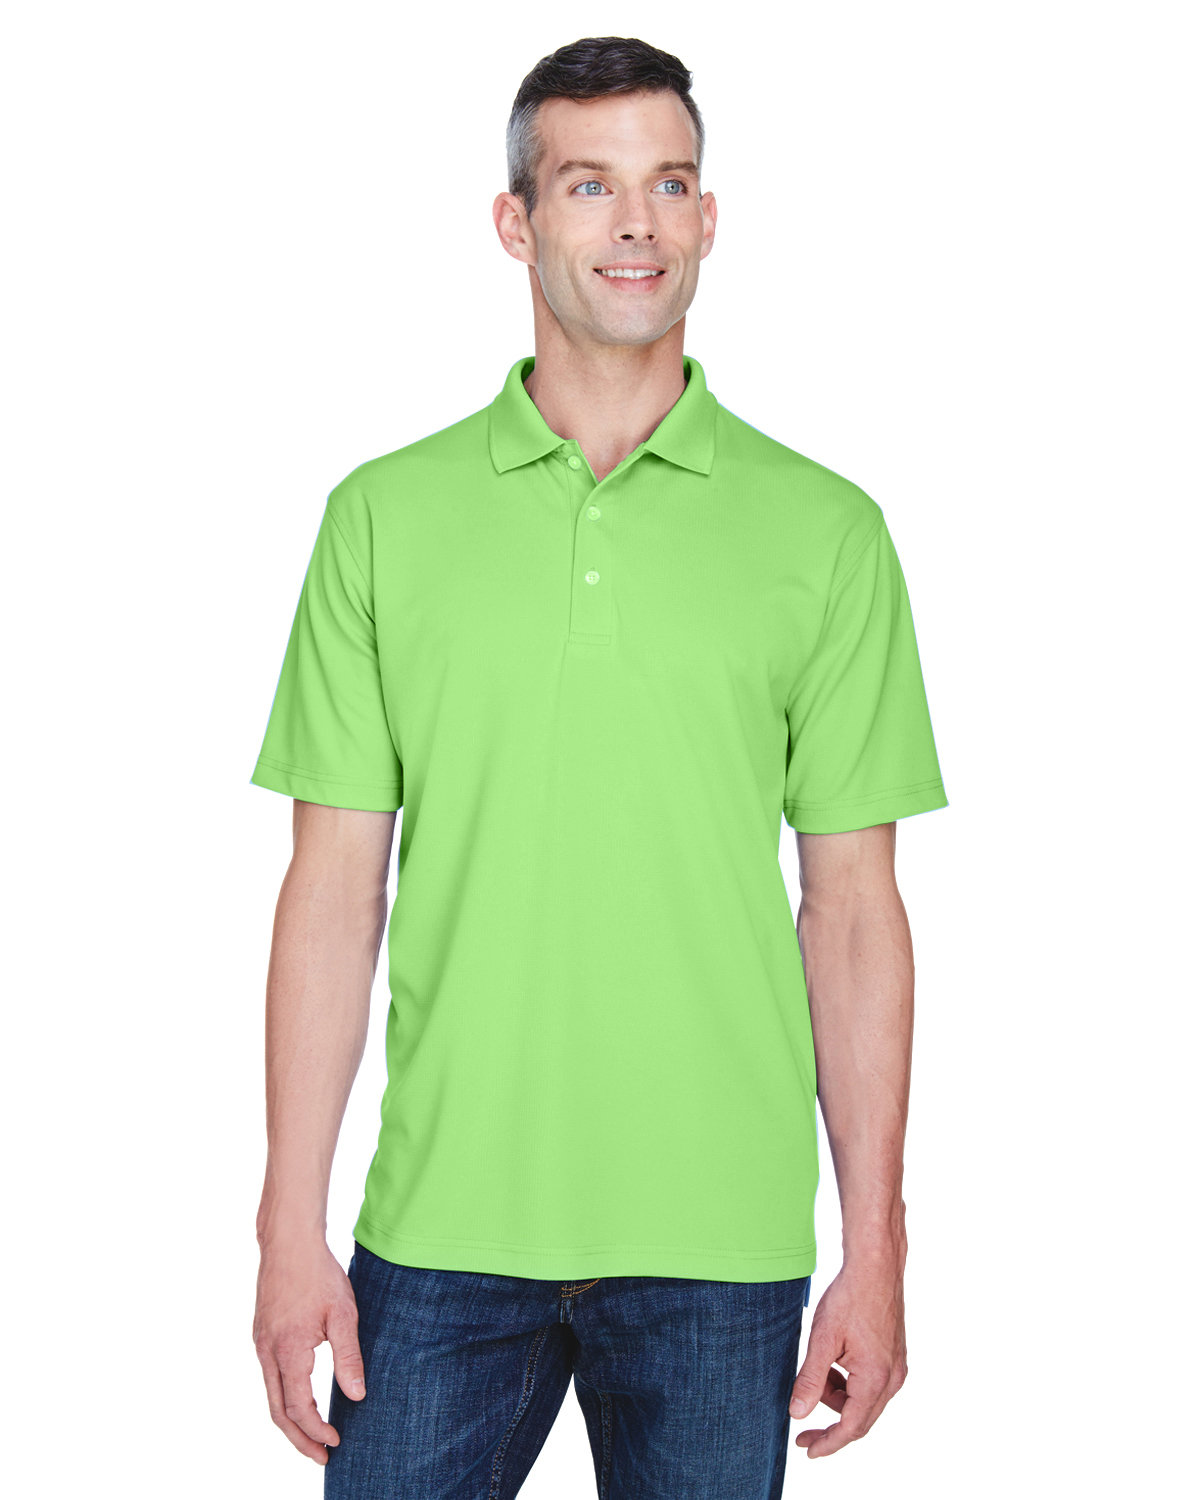 UltraClub Men's Cool & Dry Stain-Release Performance Polo LIGHT GREEN